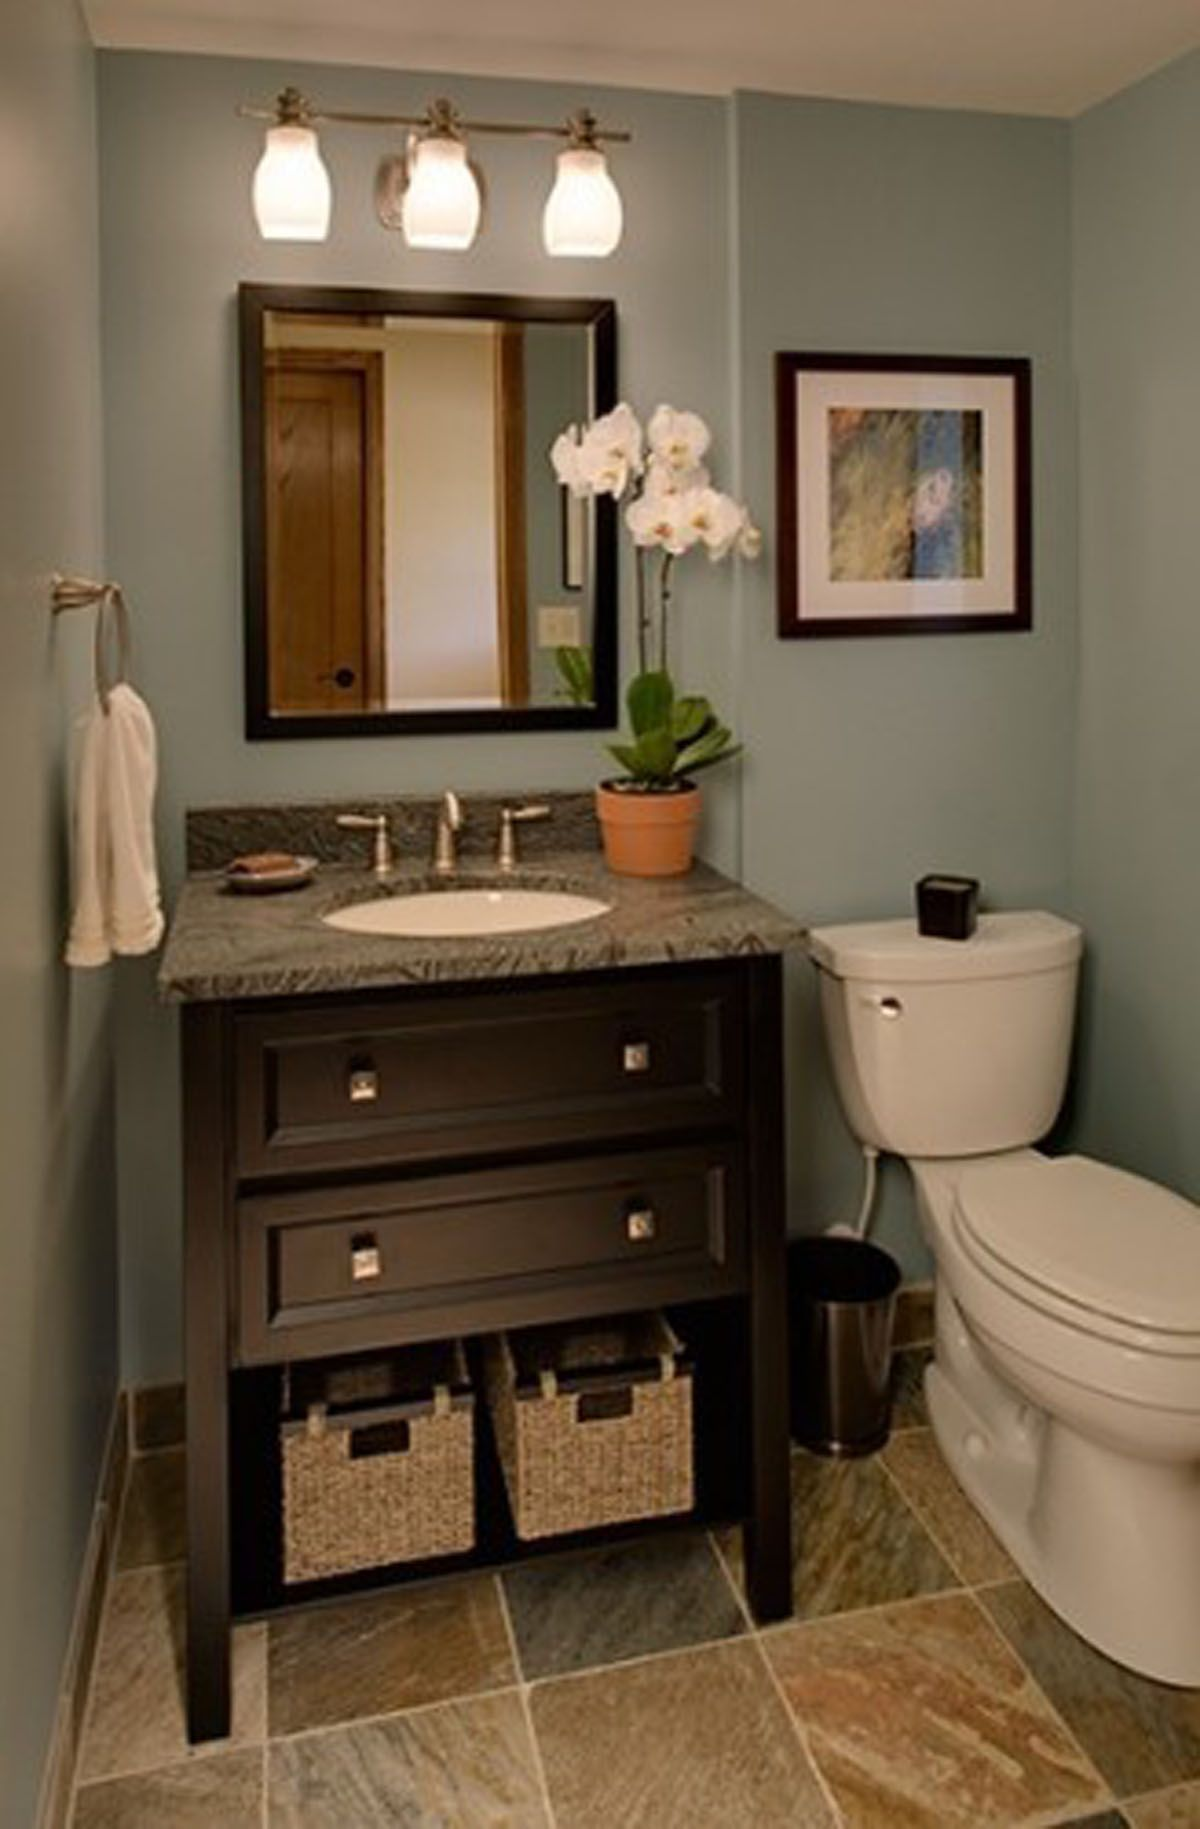 How to decorate a small half bathroom - Half Bathroom Decorating Ideas Design Ideas Decors